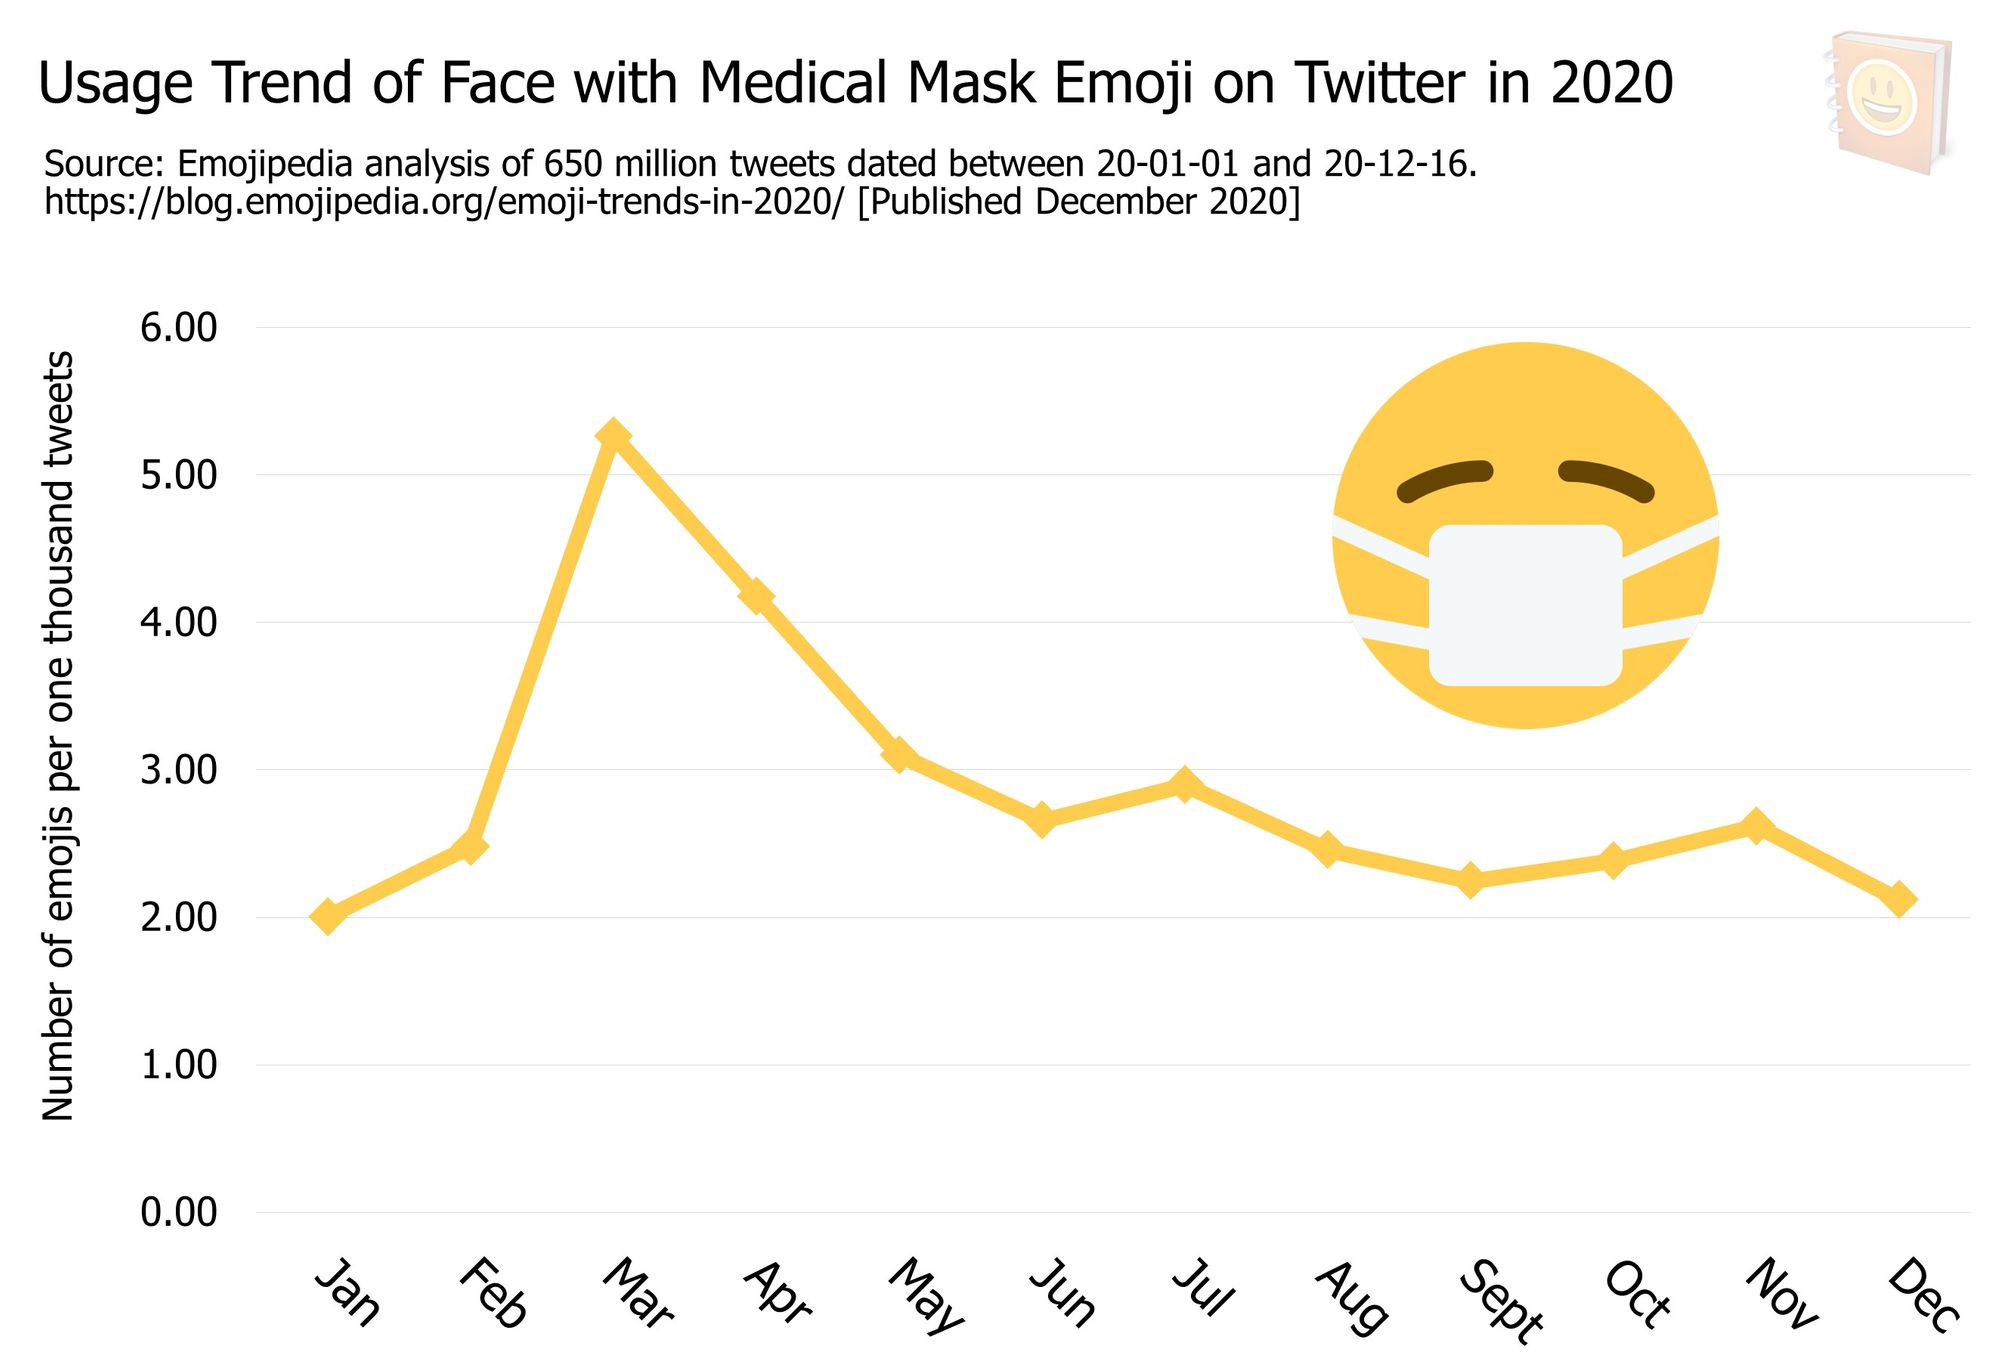 Emoji-Trends-In-2020---Usage-Trend-of-Face-with-Medical-Mask-Emoji-on-Twitter-in-2020